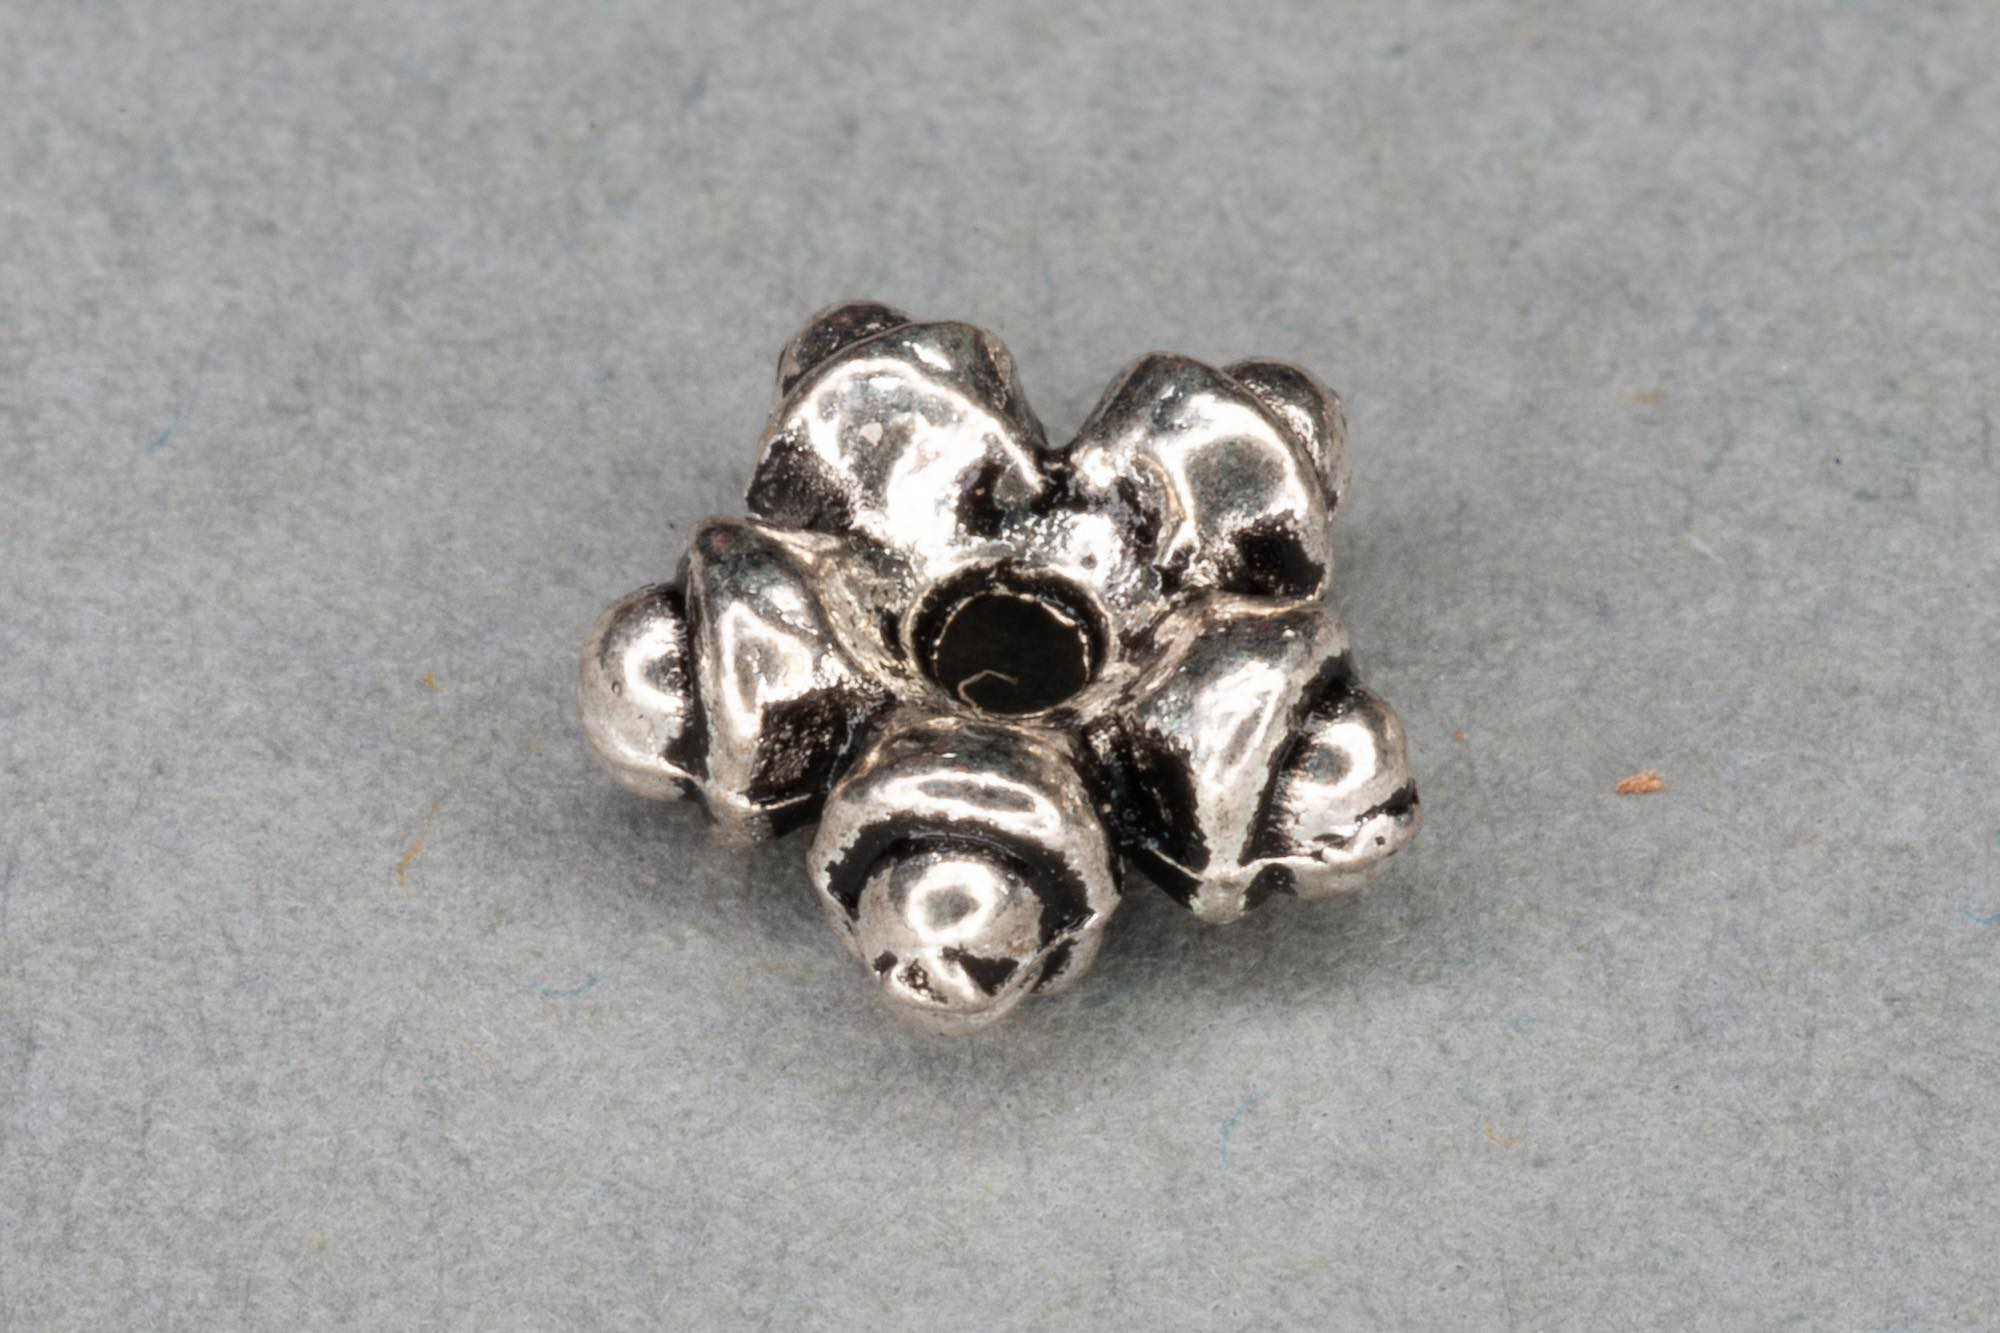 Antique Silver Plated Flat 'Star' Spacer Bead 8x3mm, 1.2mm hole